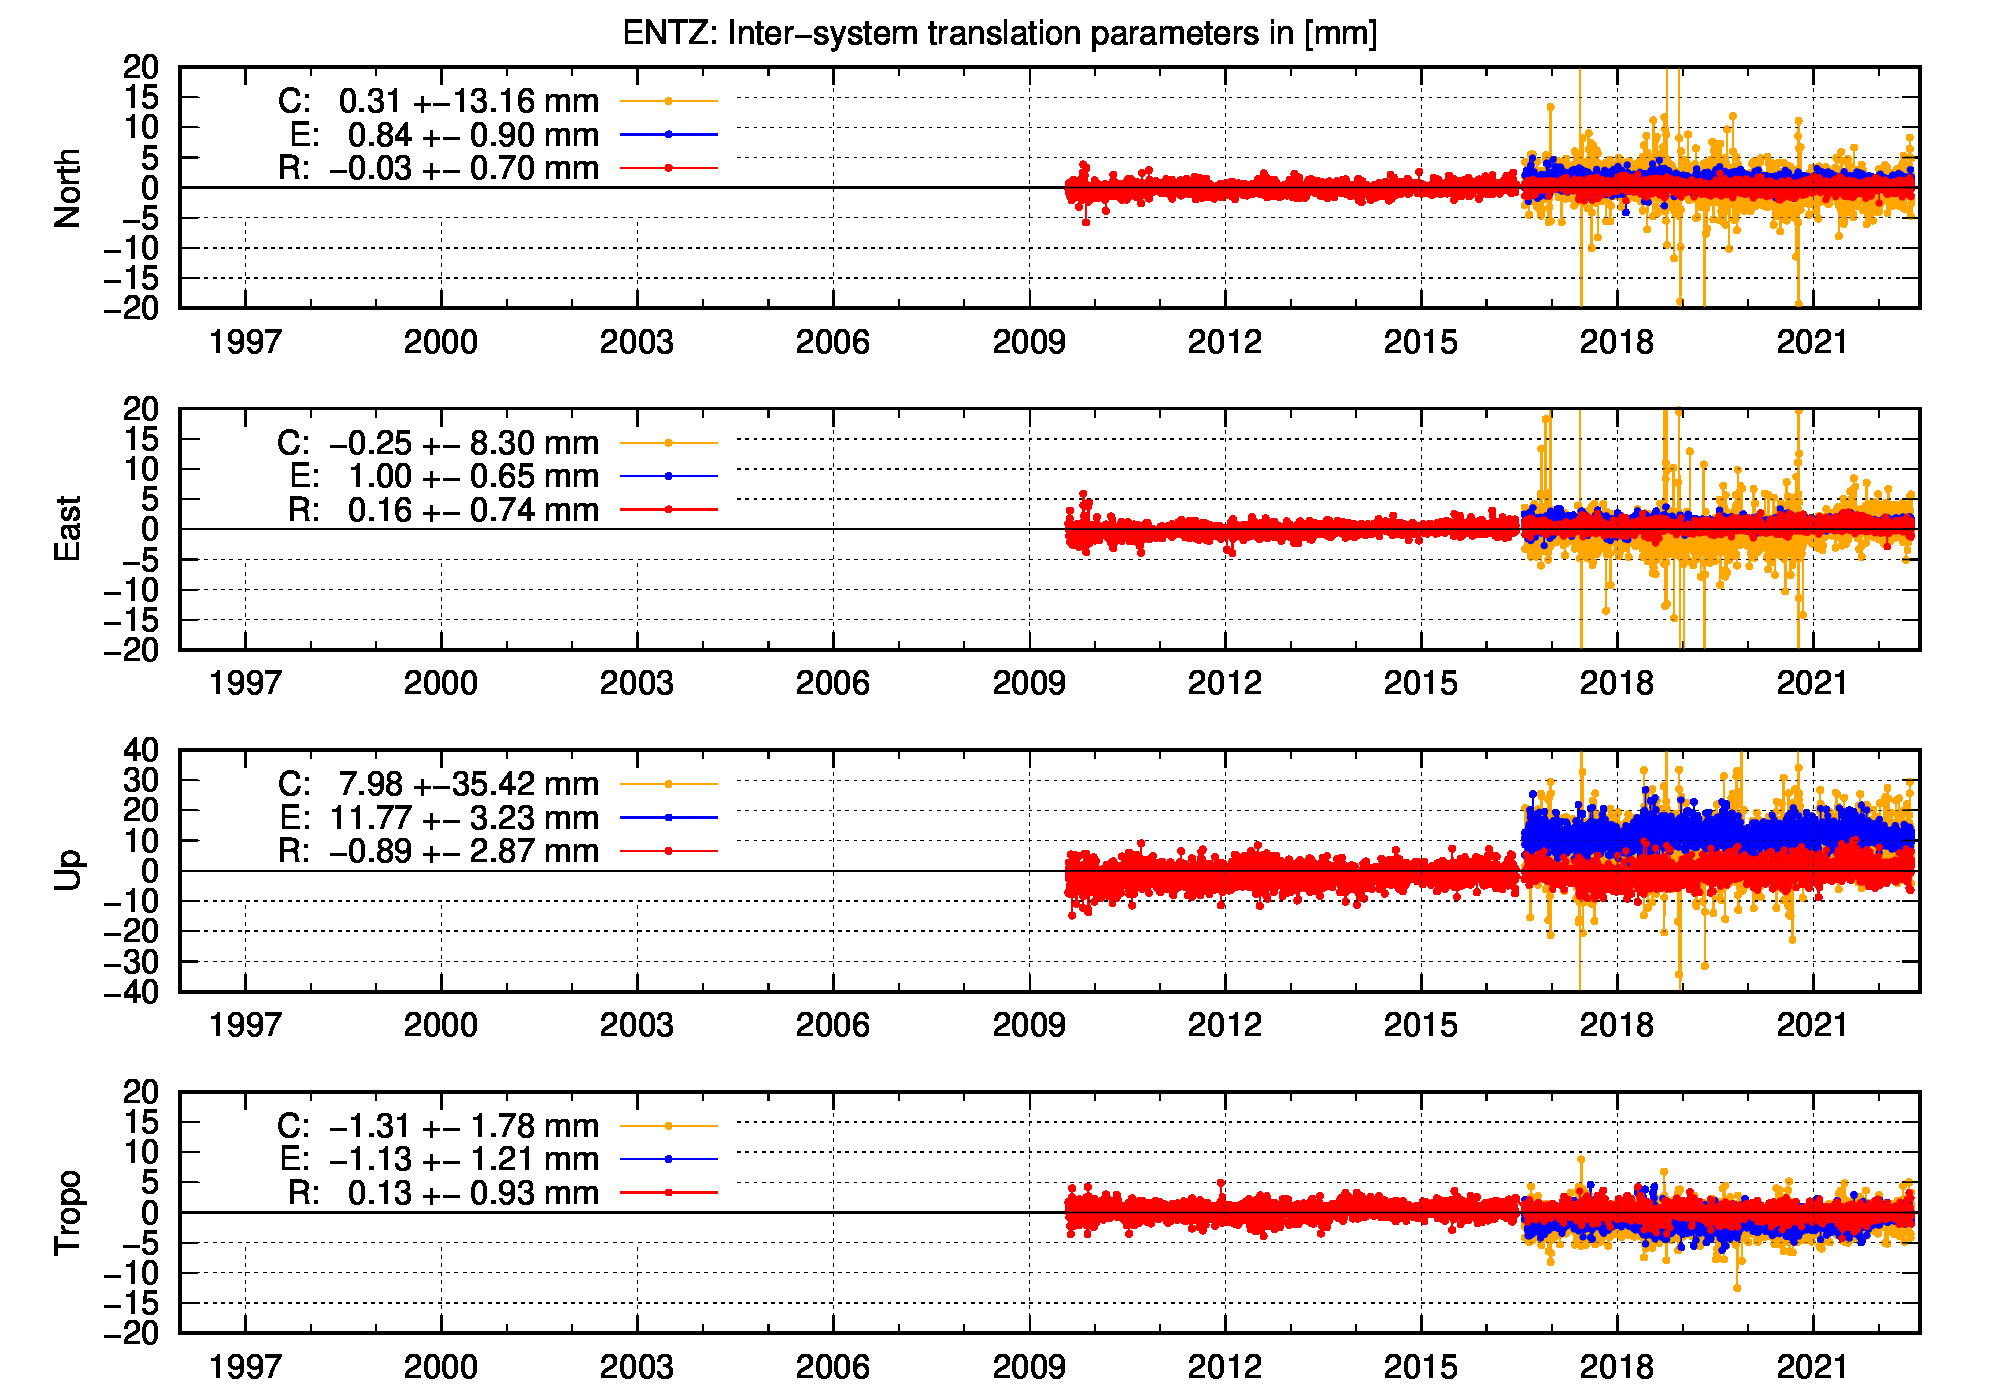 Long-term TRA time series of ENTZ